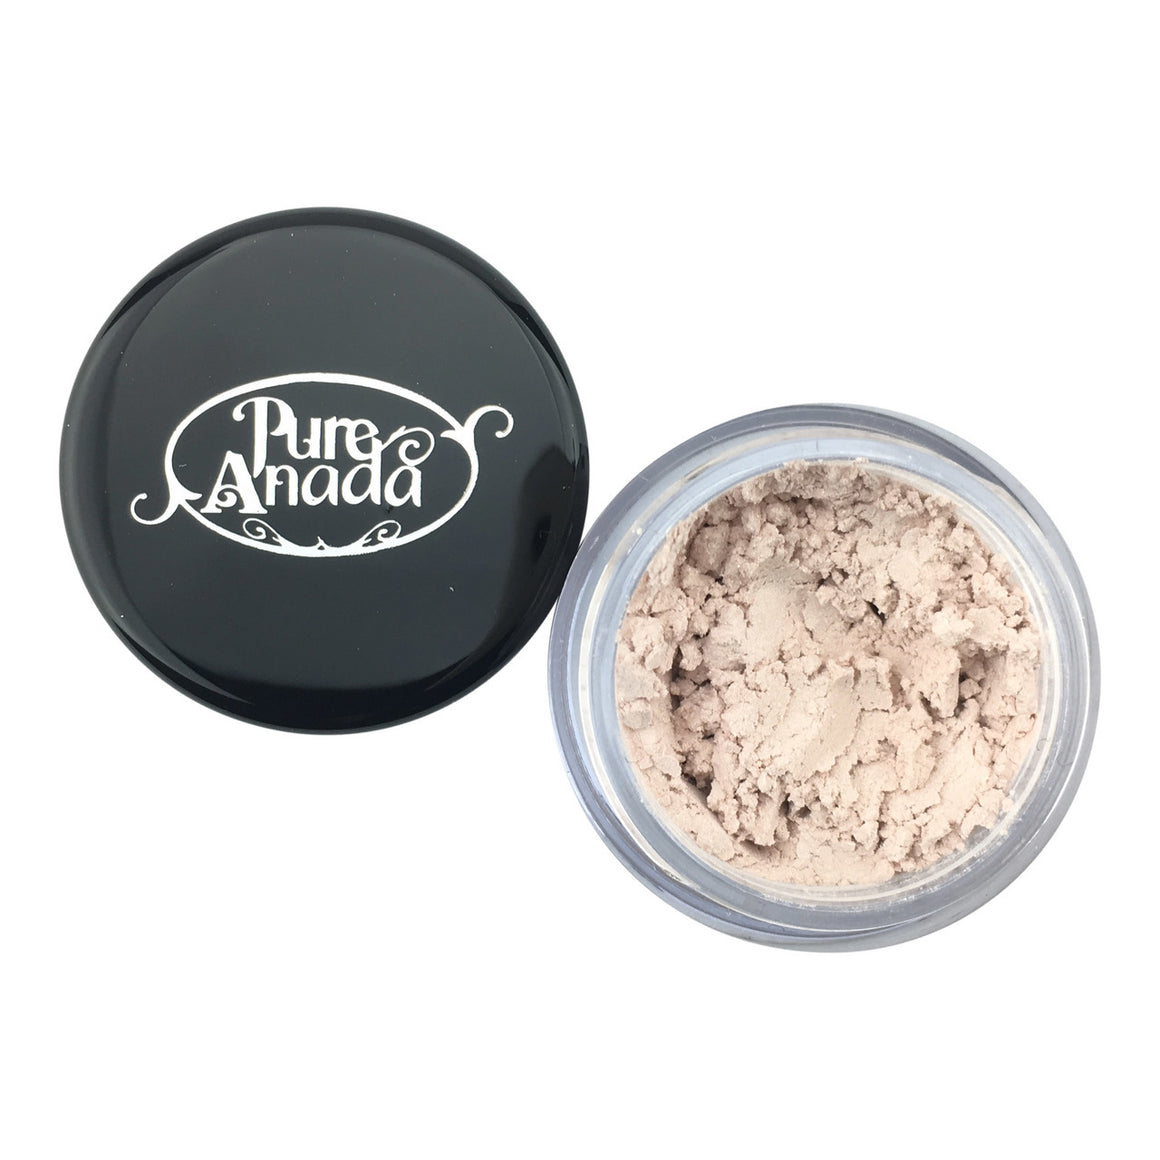 Pixie Pink - Luminous Eye Loose Shadow 1g-PureAnada-Live in the Light